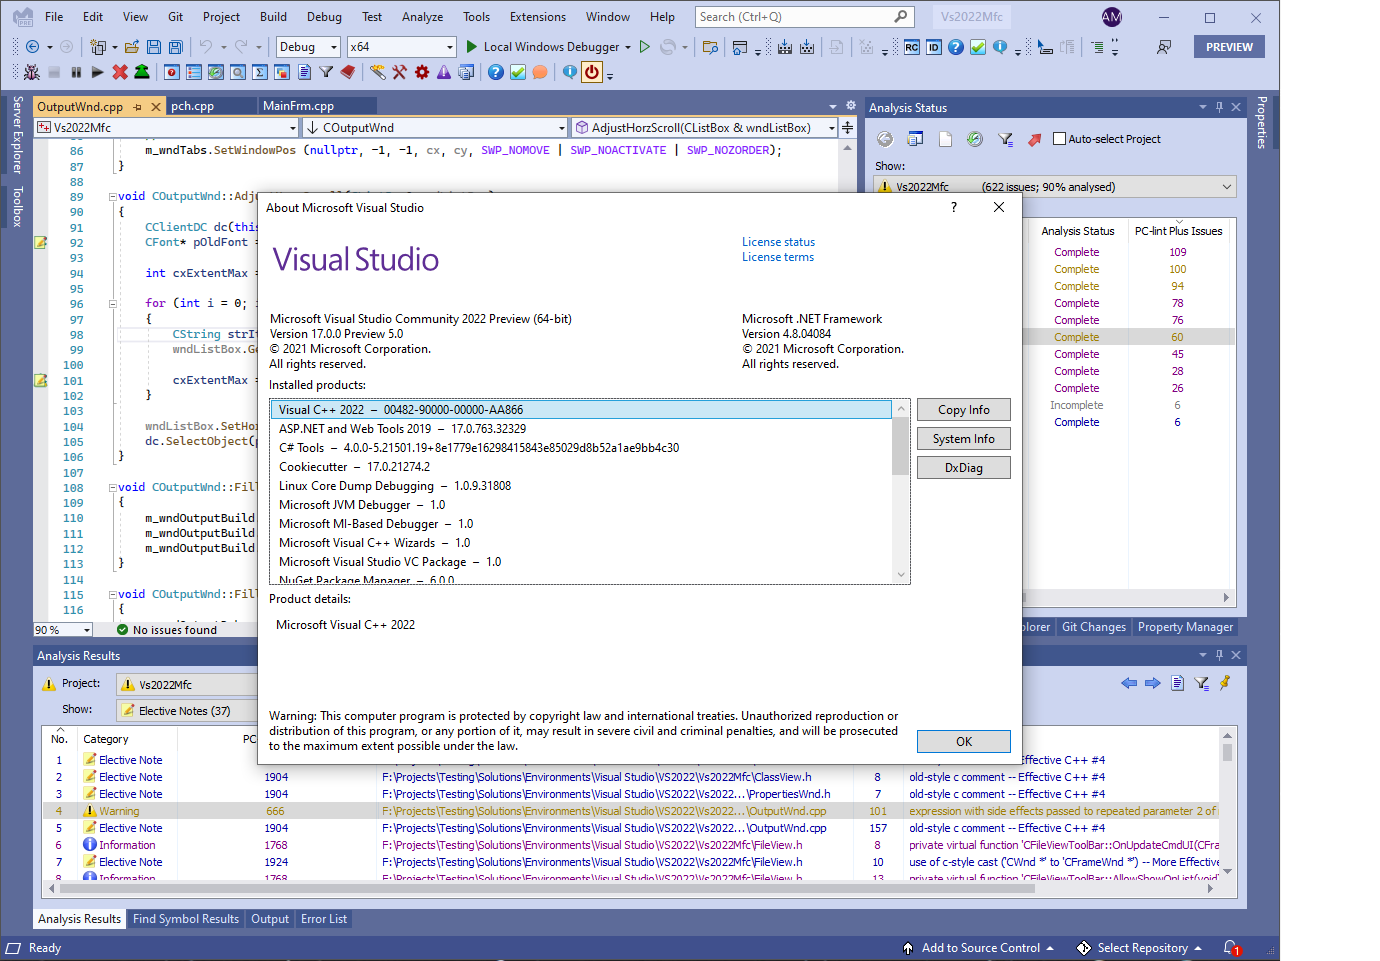 Visual Lint 8.0.5.346 running within Visual Studio 2022 Preview 5.0